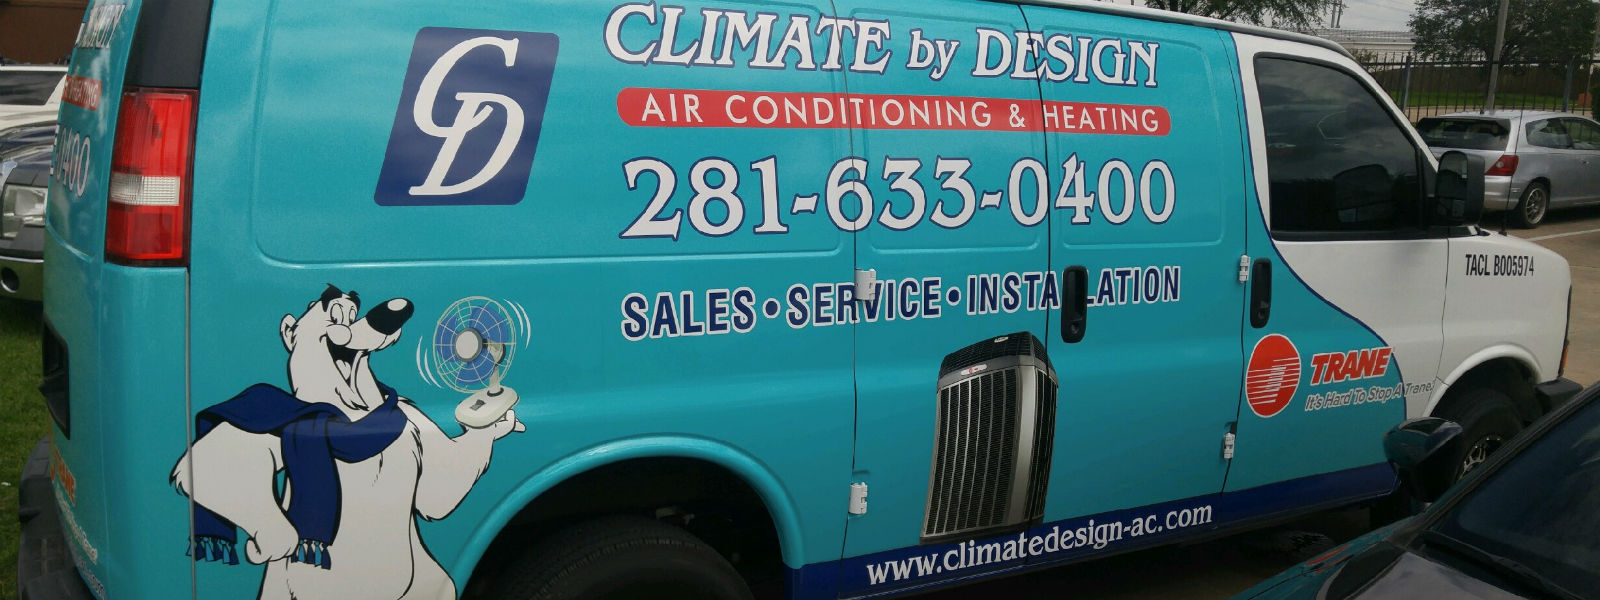 Air Condition Company, Heating Contractor, Commercial HVAC